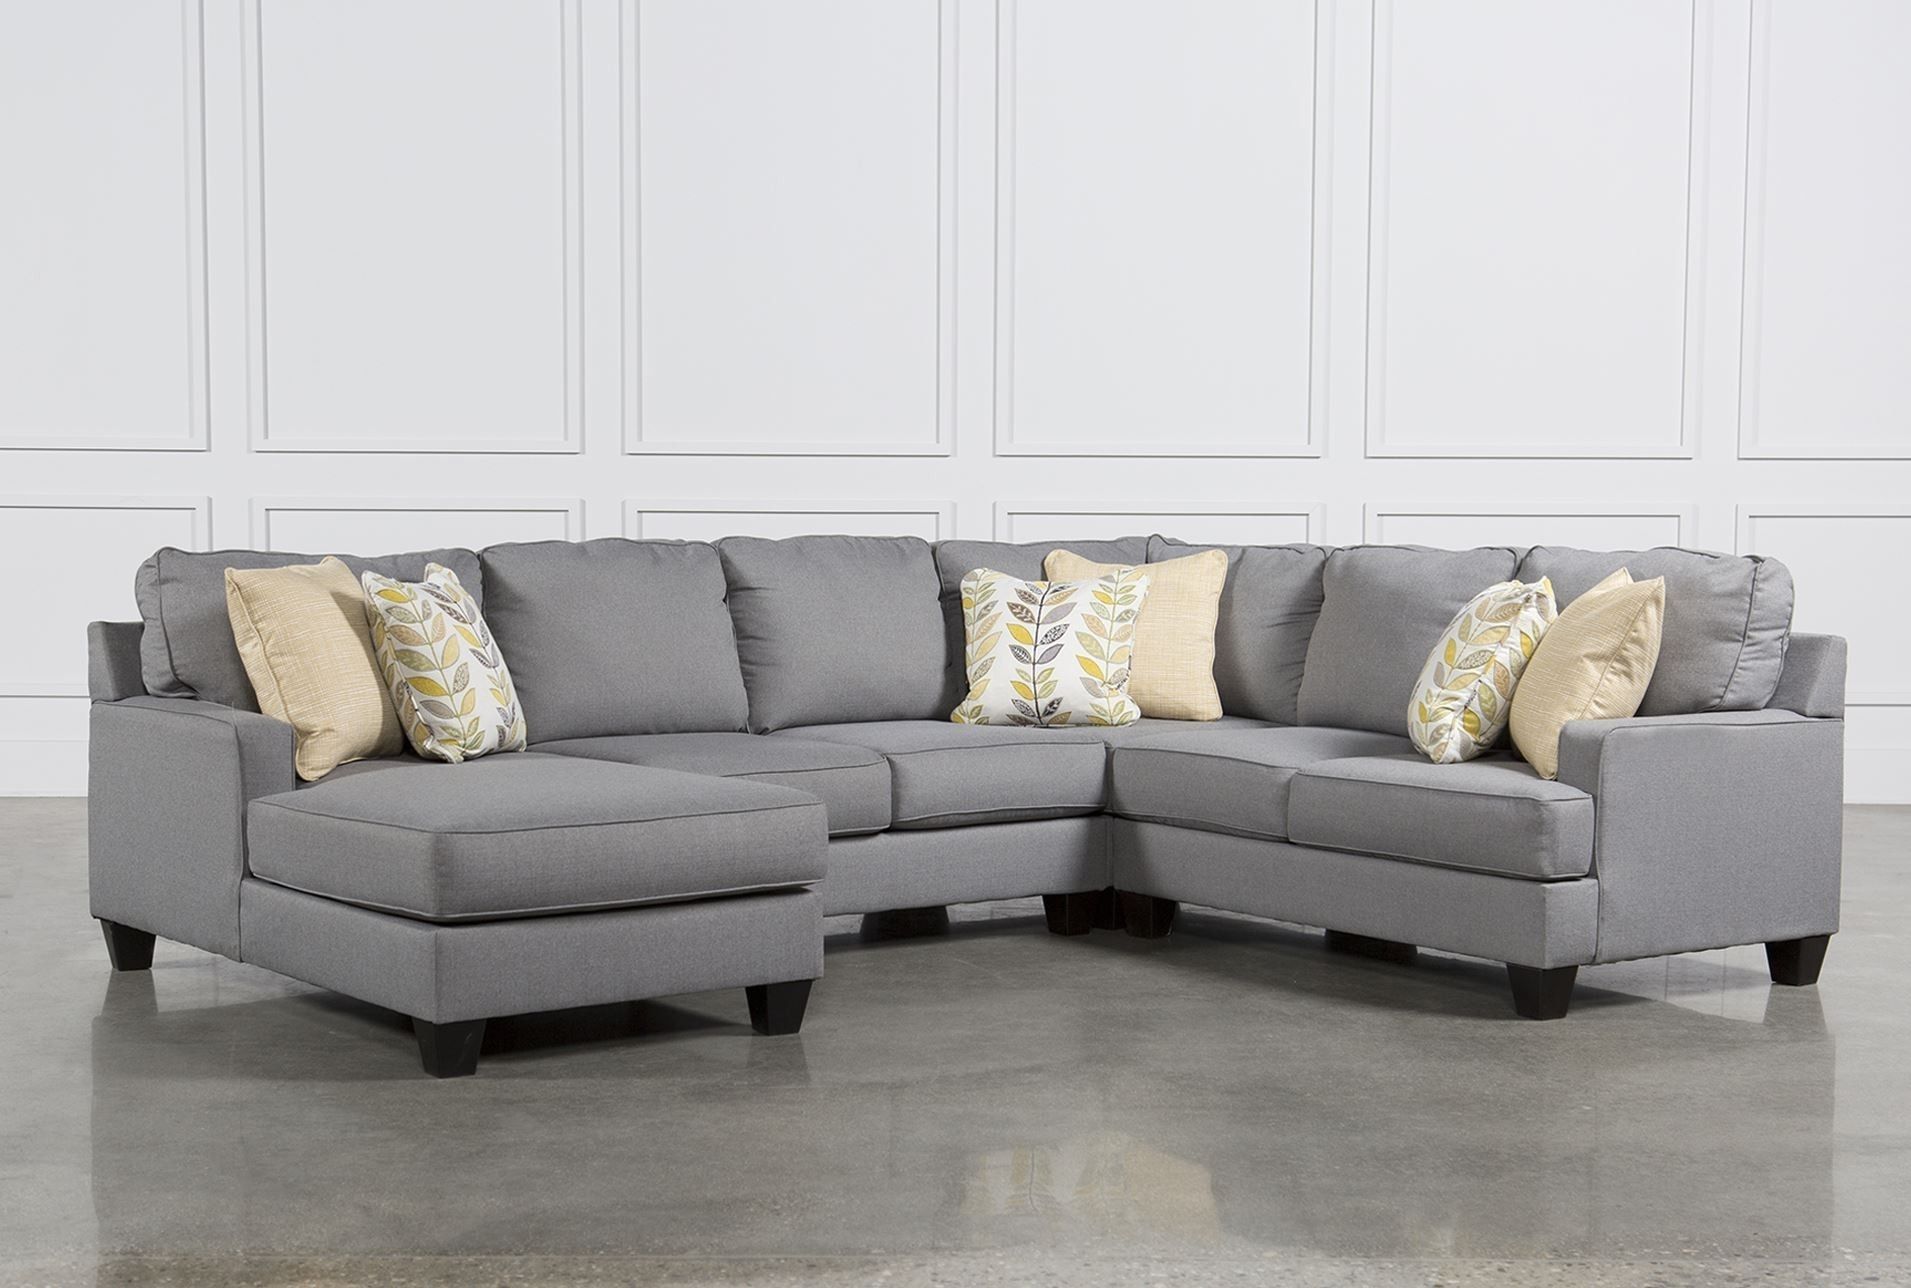 Living Spaces Sectional Sofas - Implantologiabogota.co within Haven 3 Piece Sectionals (Image 24 of 32)